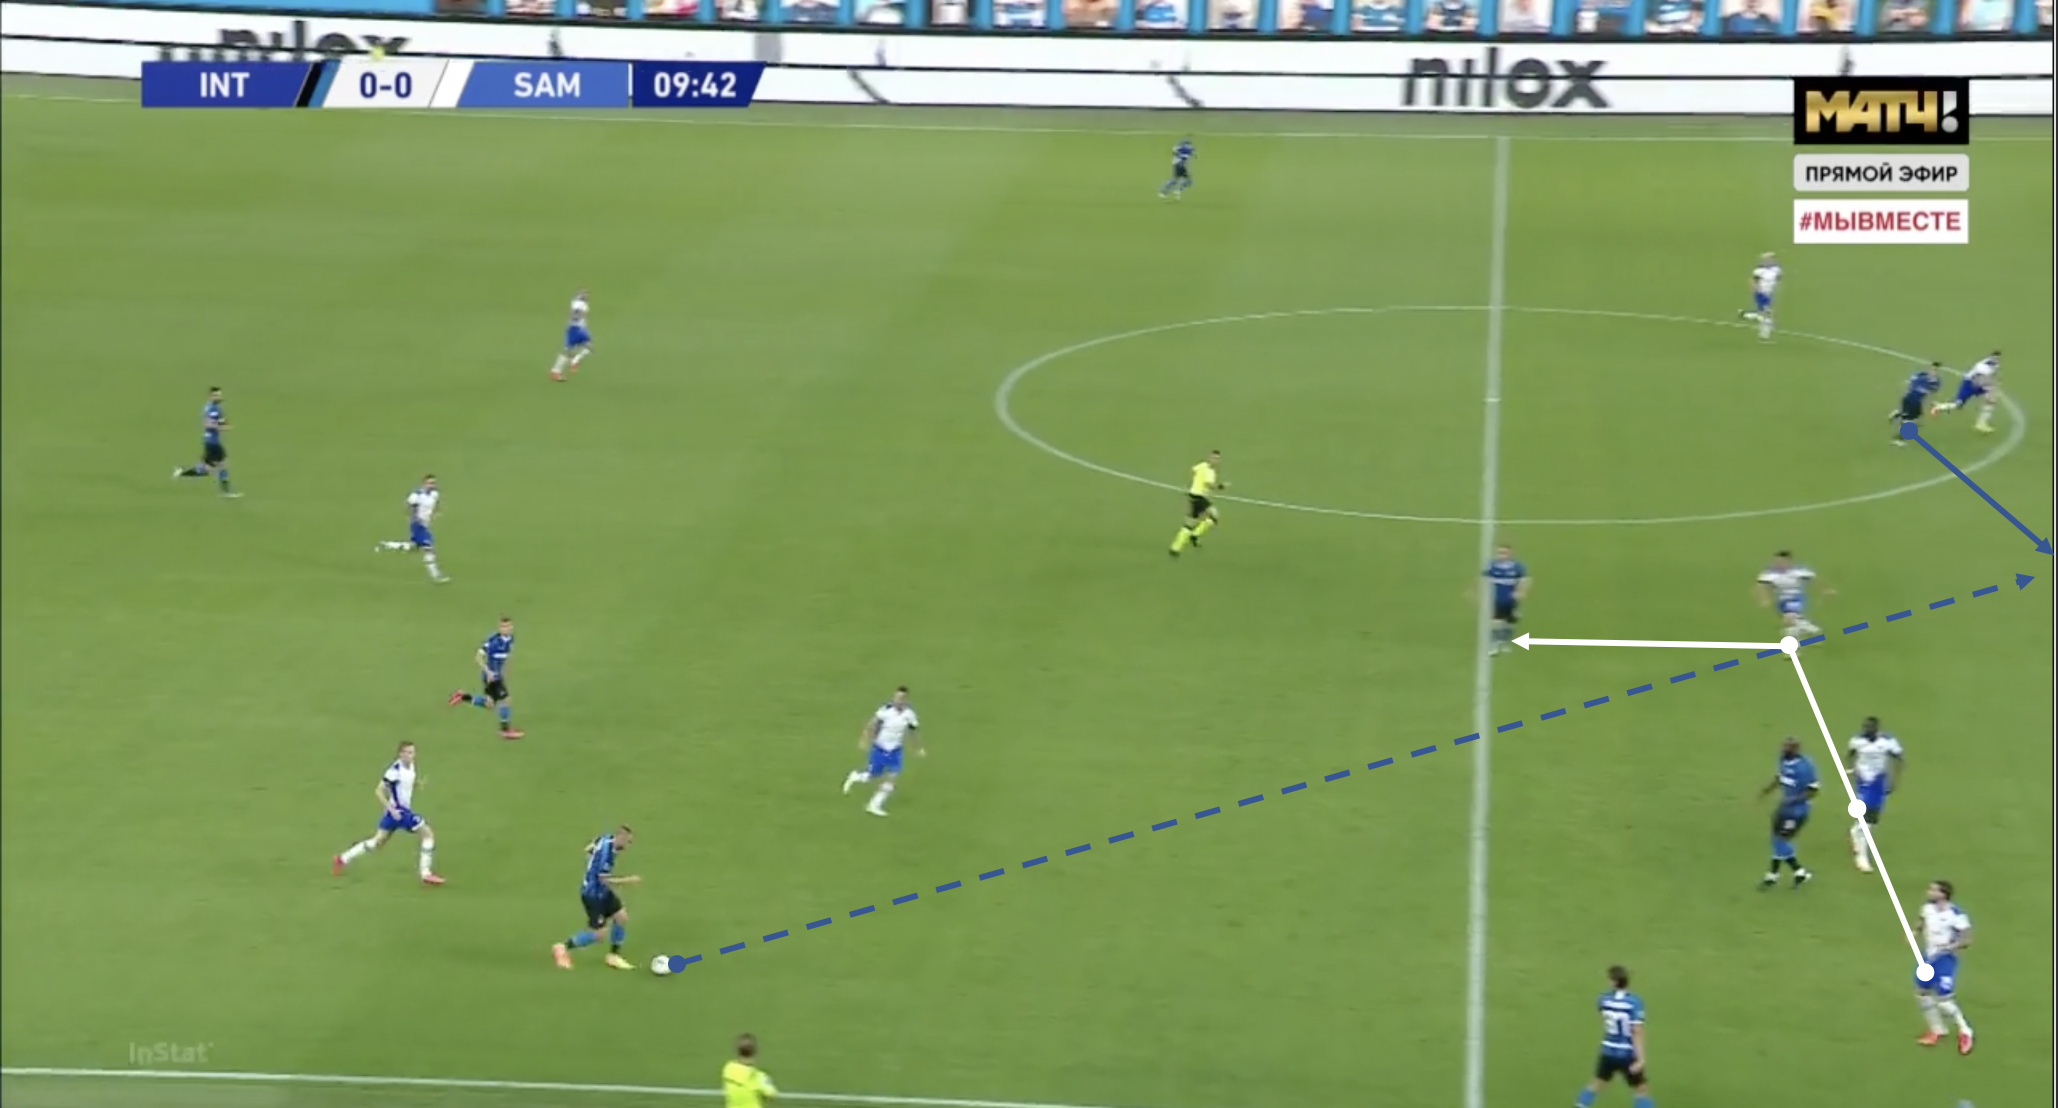 Serie A 2019/20: Inter Milan vs Sampdoria - tactical analysis tactics